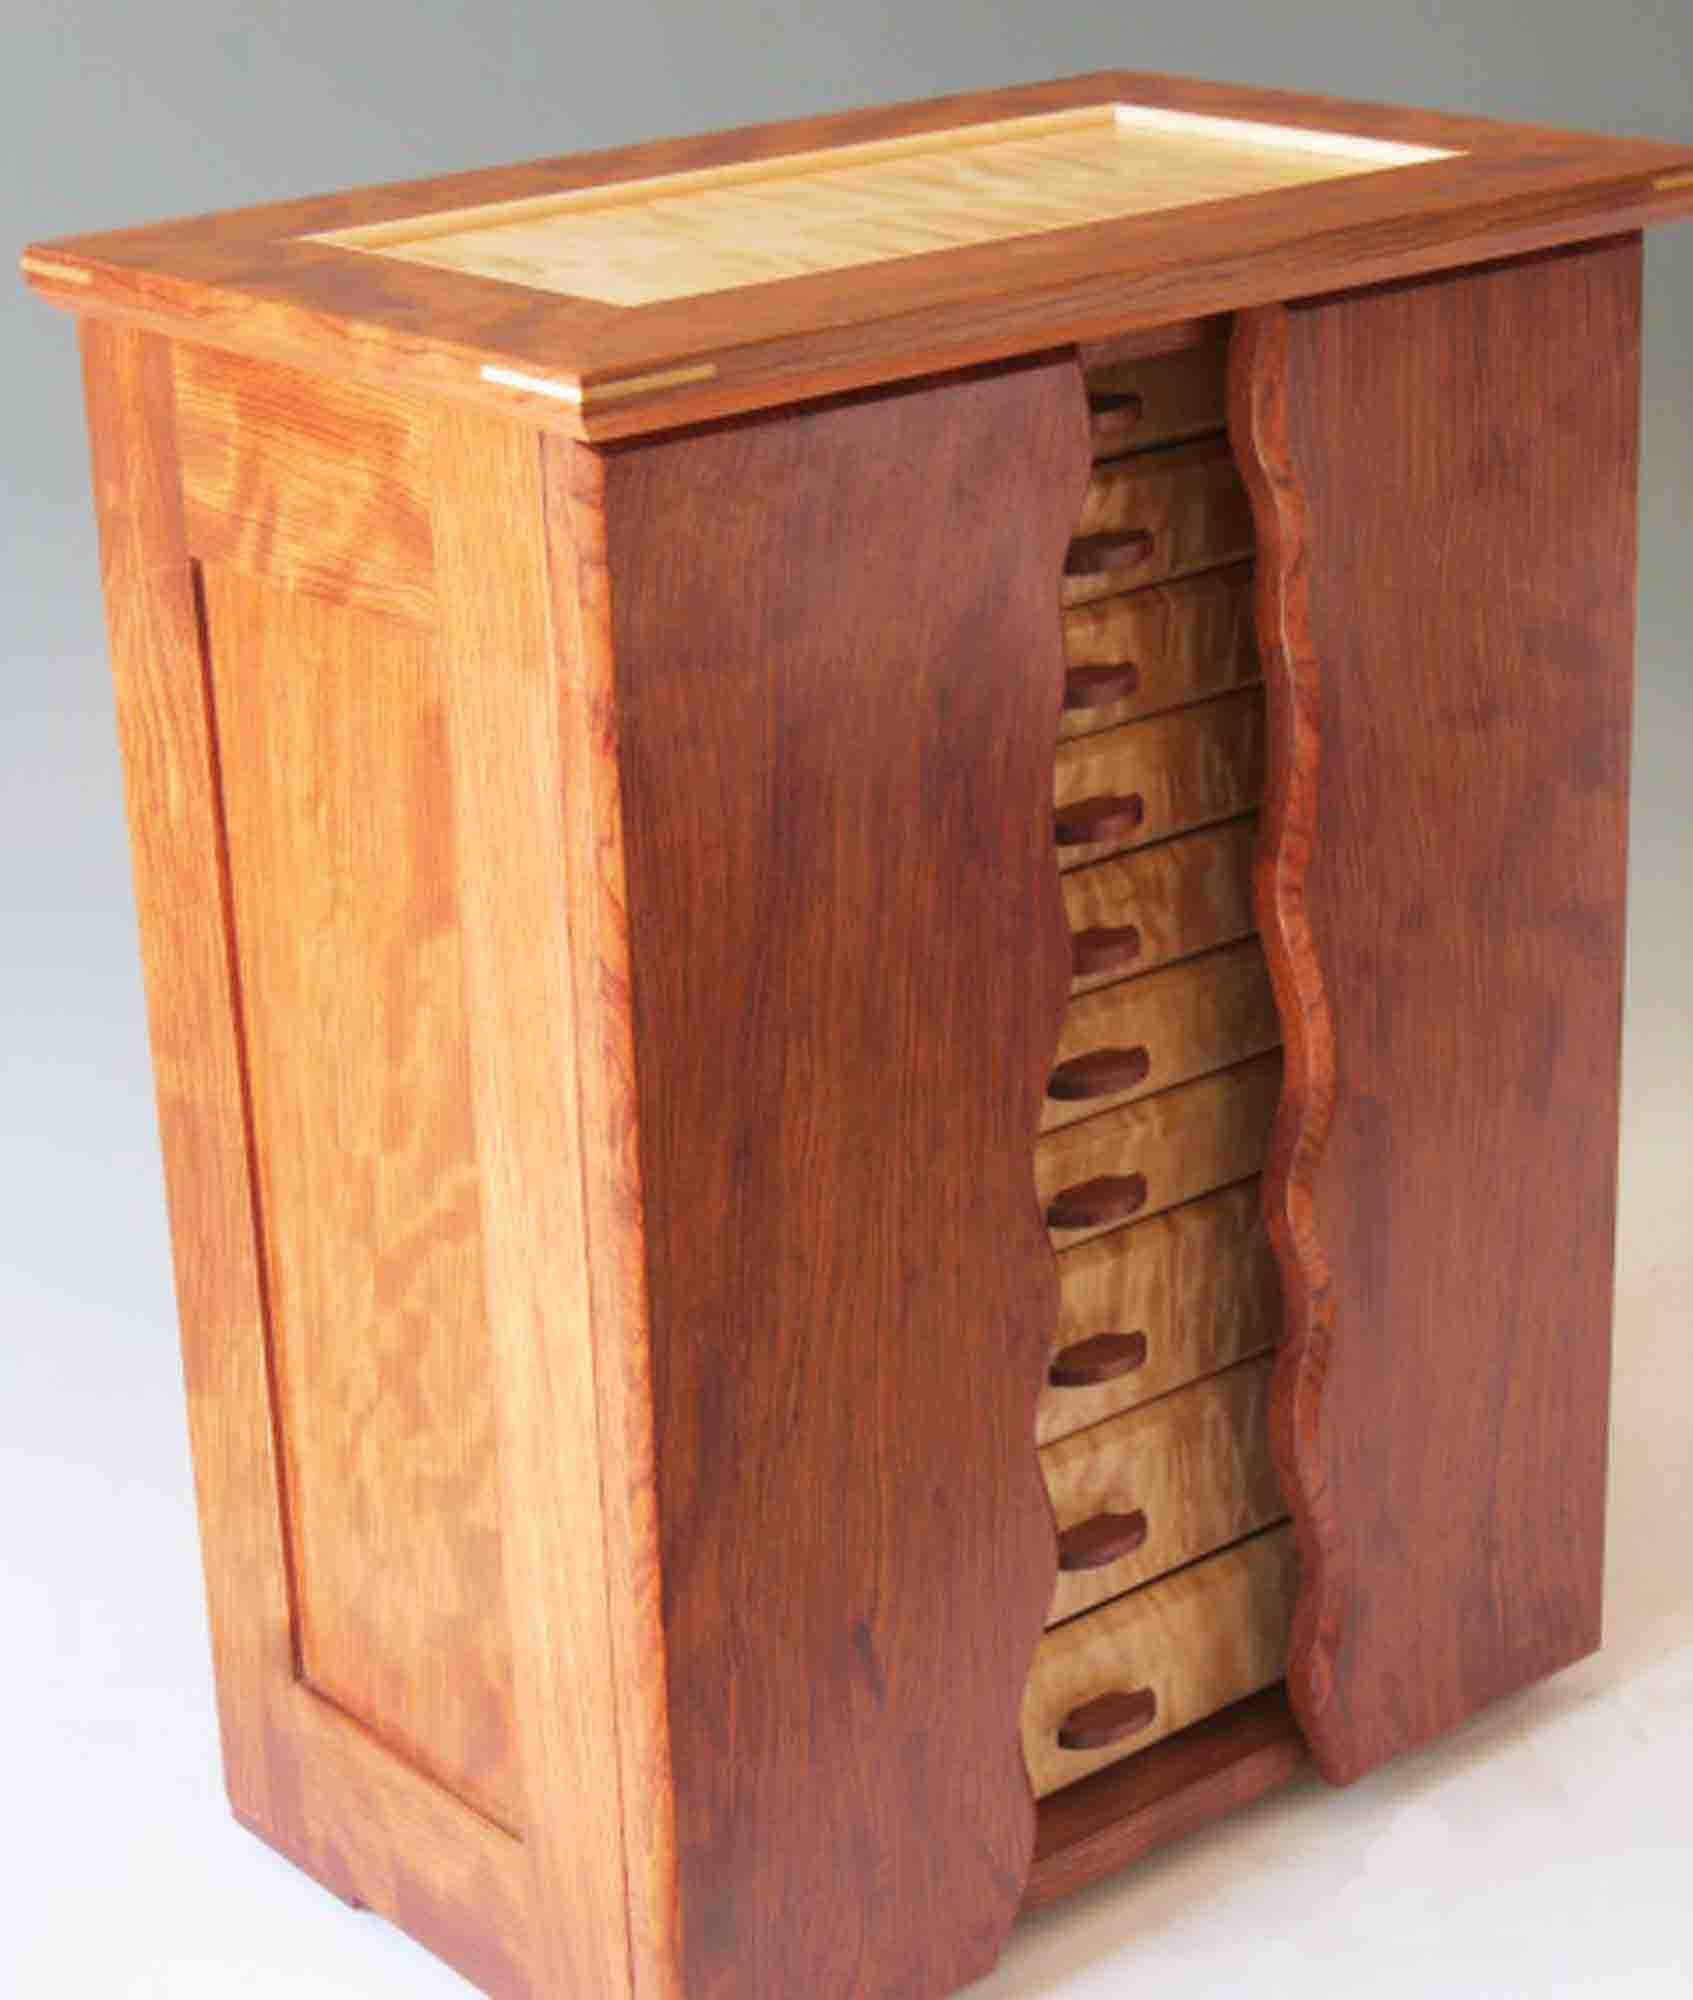 Armoire jewelry box handcrafted of wood